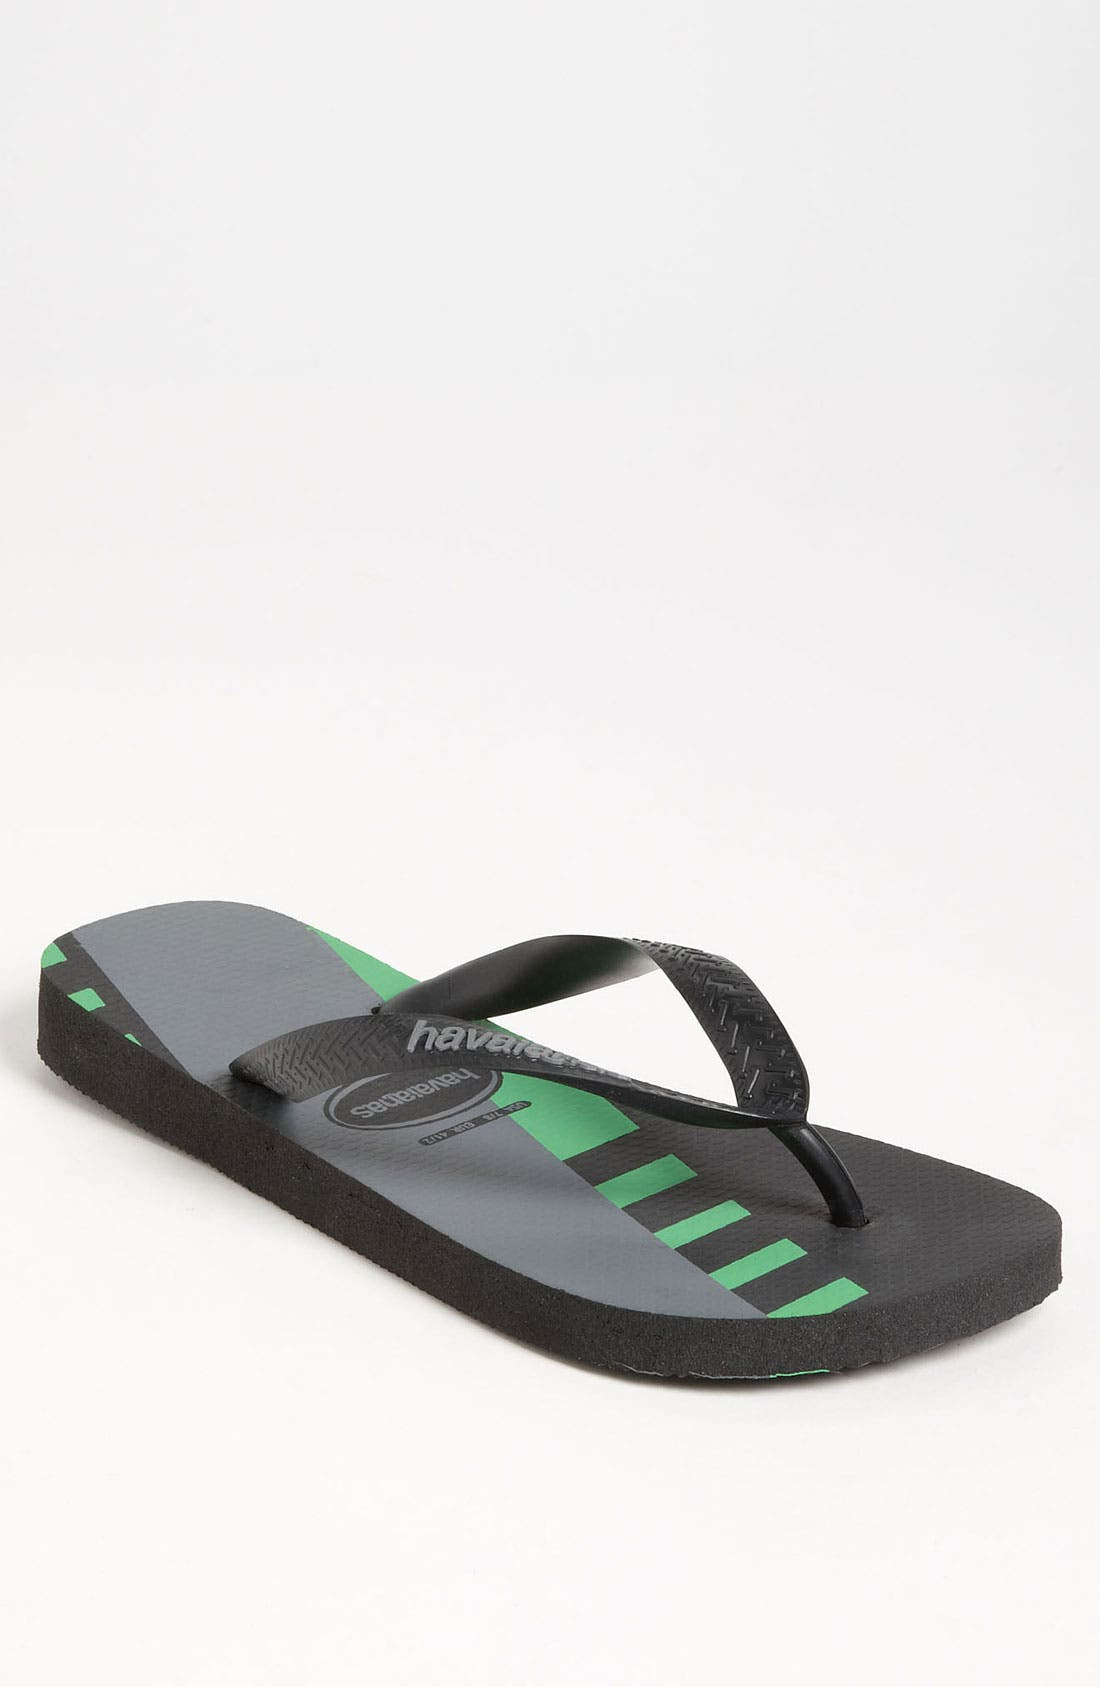 TREND Mens Flip Flop,                         Main,                         color, Black/ Green